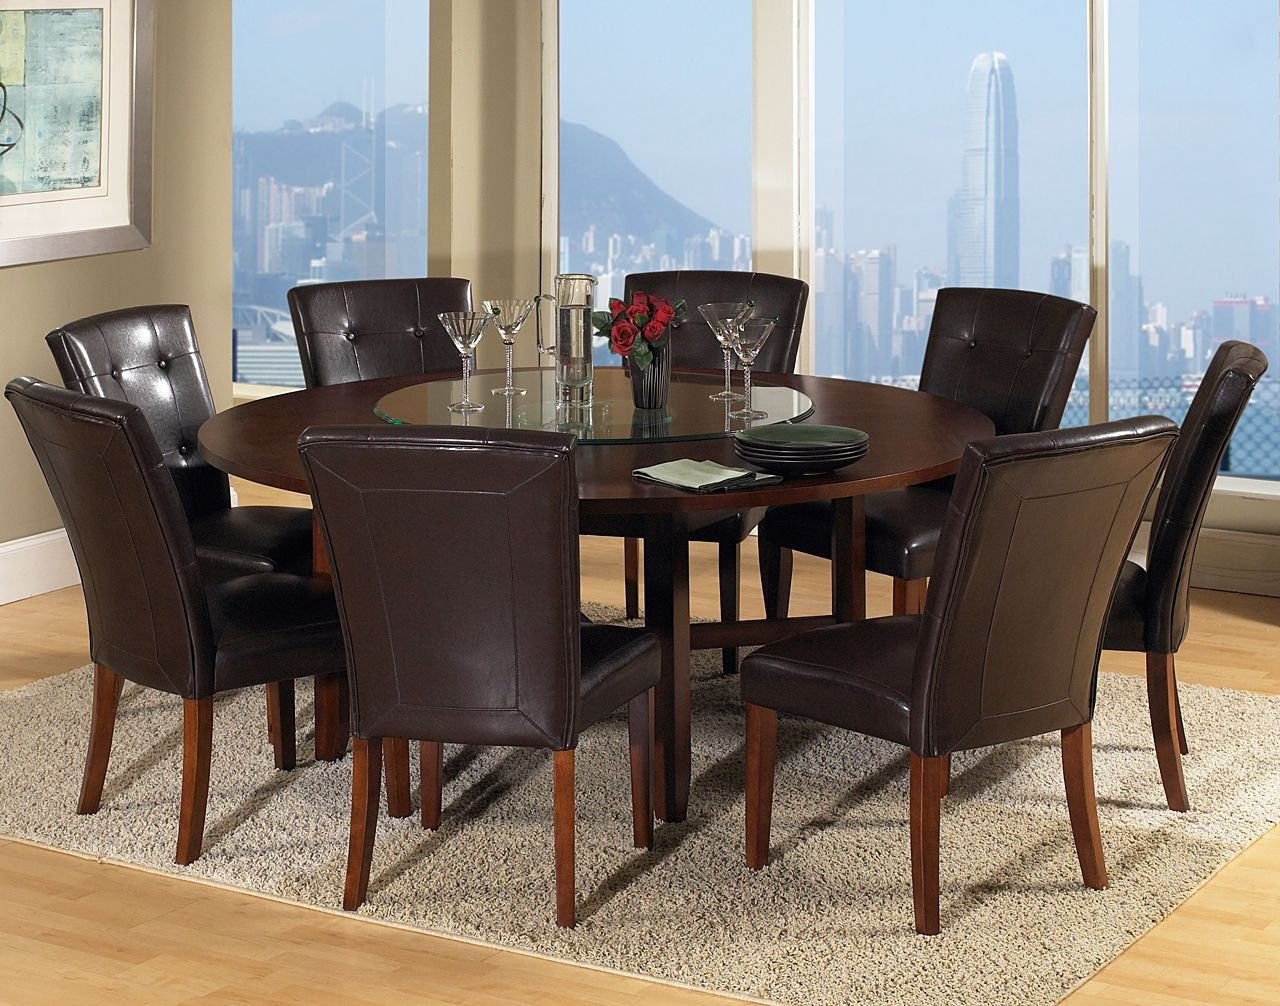 Charming Round Dining Table For 8 People